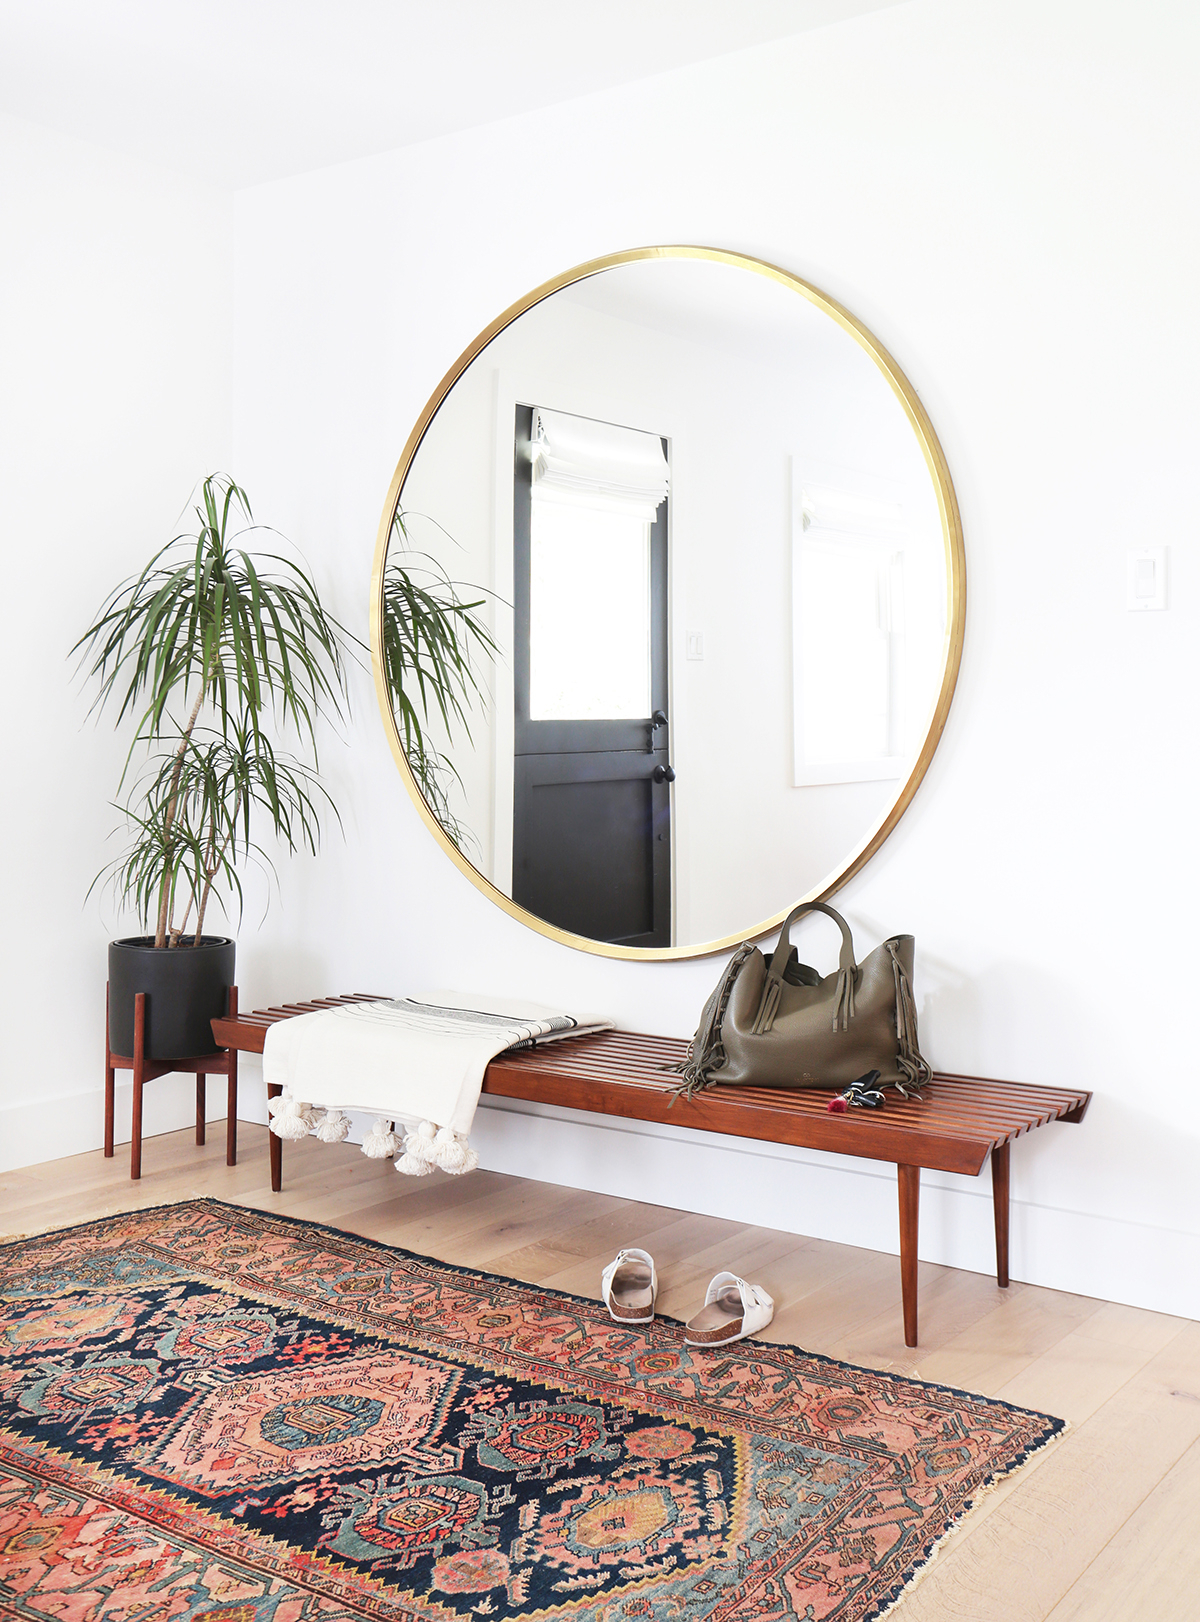 Use Round Mirrors To Complete Any Room In Your Home | Kathy Regarding Round Eclectic Accent Mirrors (Image 18 of 20)